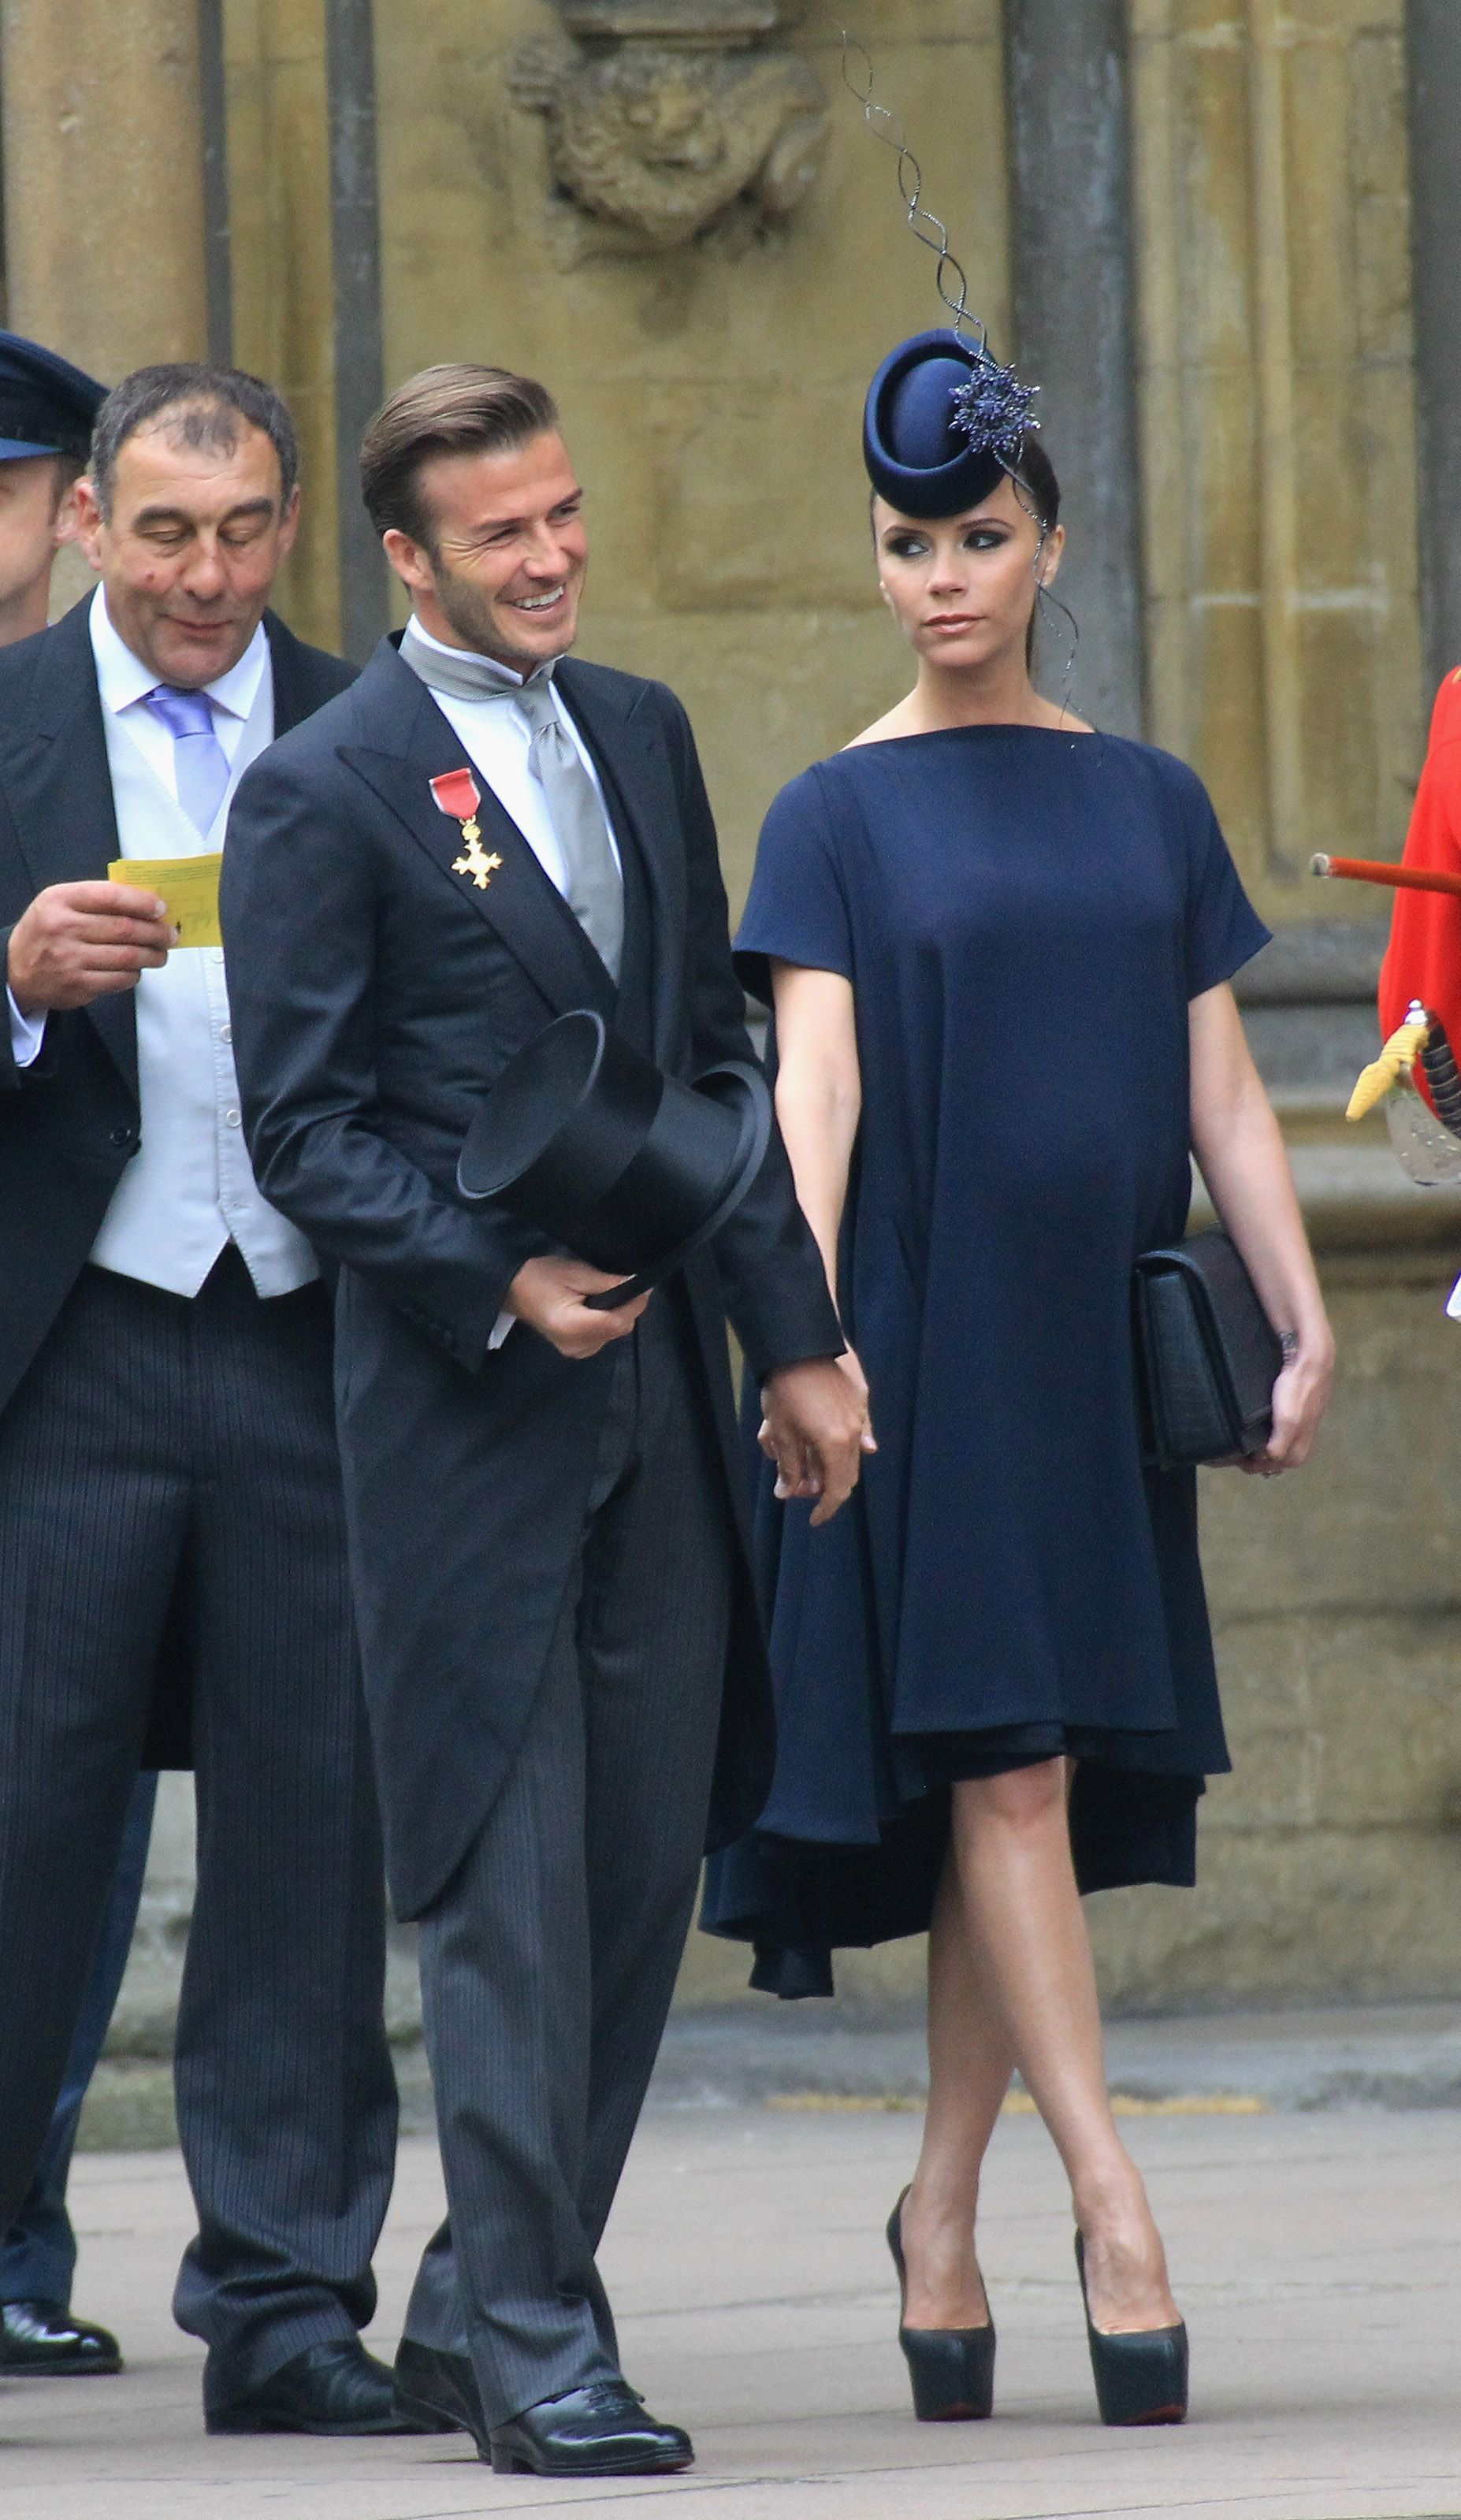 David And Victoria Beckham Arrive At The Royal Wedding Was By His Side Wearing A Navy Blue Dress From Her Collection